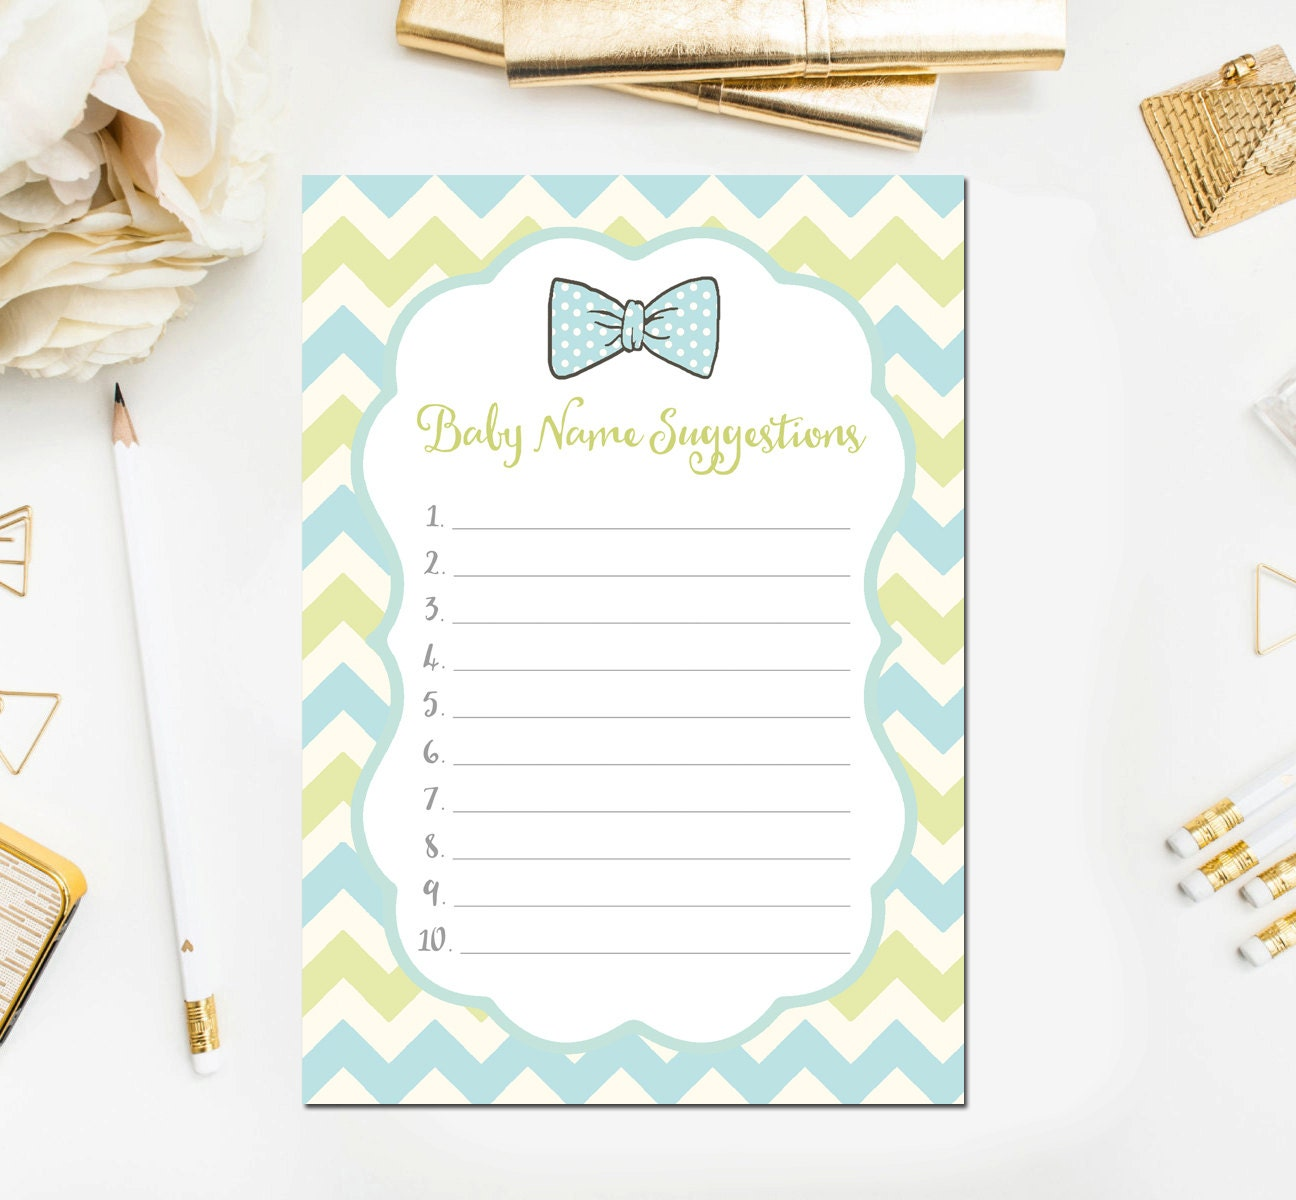 baby name suggestions baby shower game baby shower